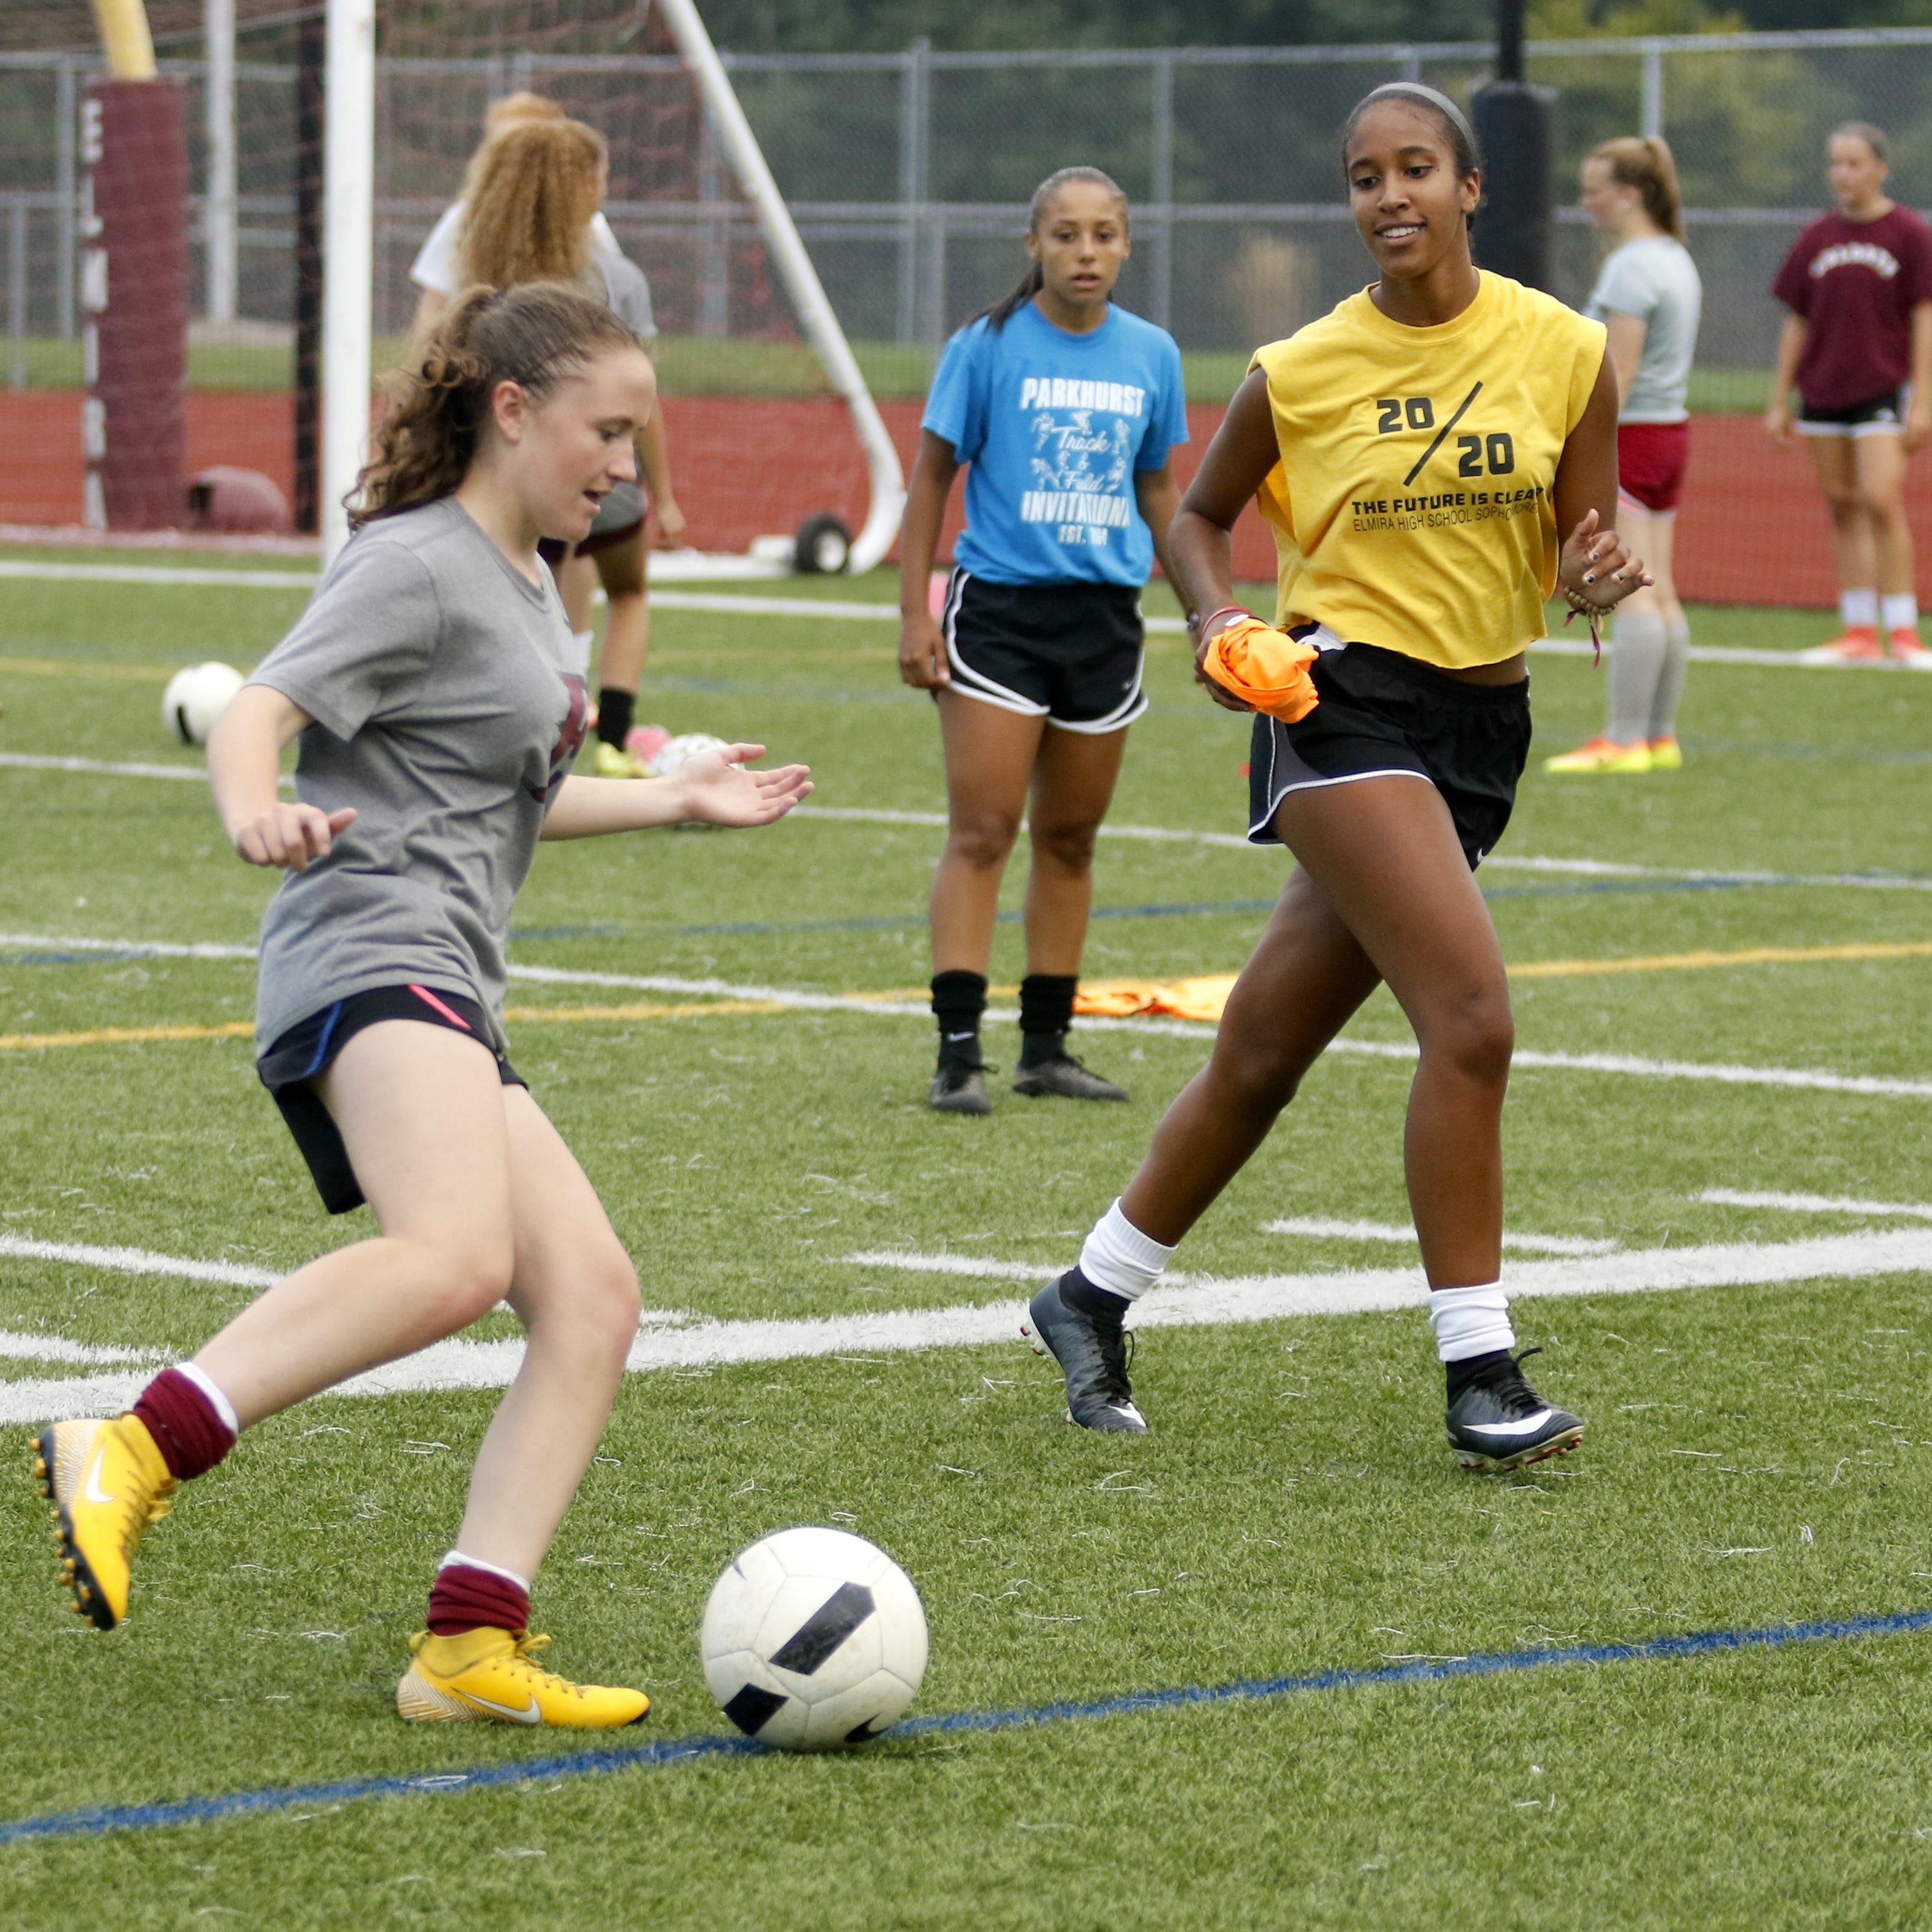 Girls soccer: With all-state talent gone, Elmira tries to stay at the top